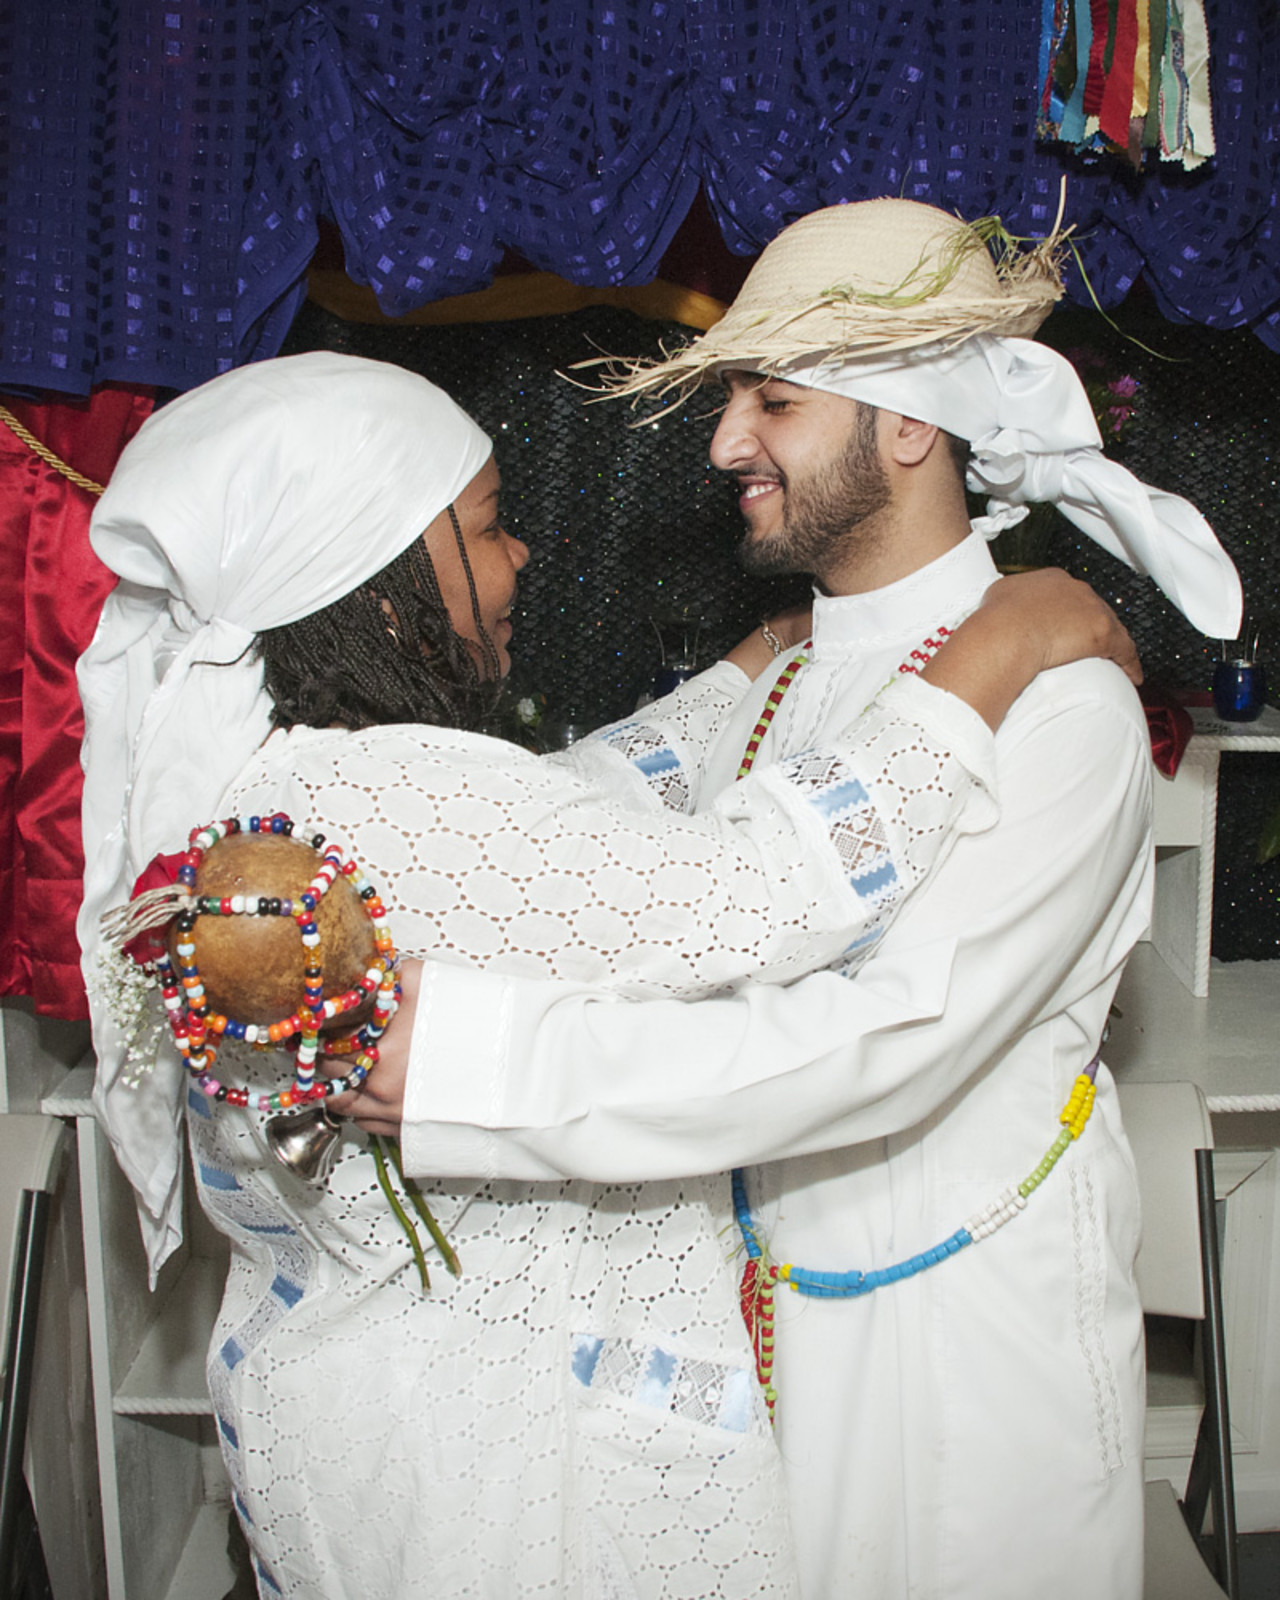 After Oungan Ahmed completes his initiation, his spiritual mom, Supote Bon Mambo, greets him for the first time as her spiritual son (Photo courtesy Shannon Taggart)